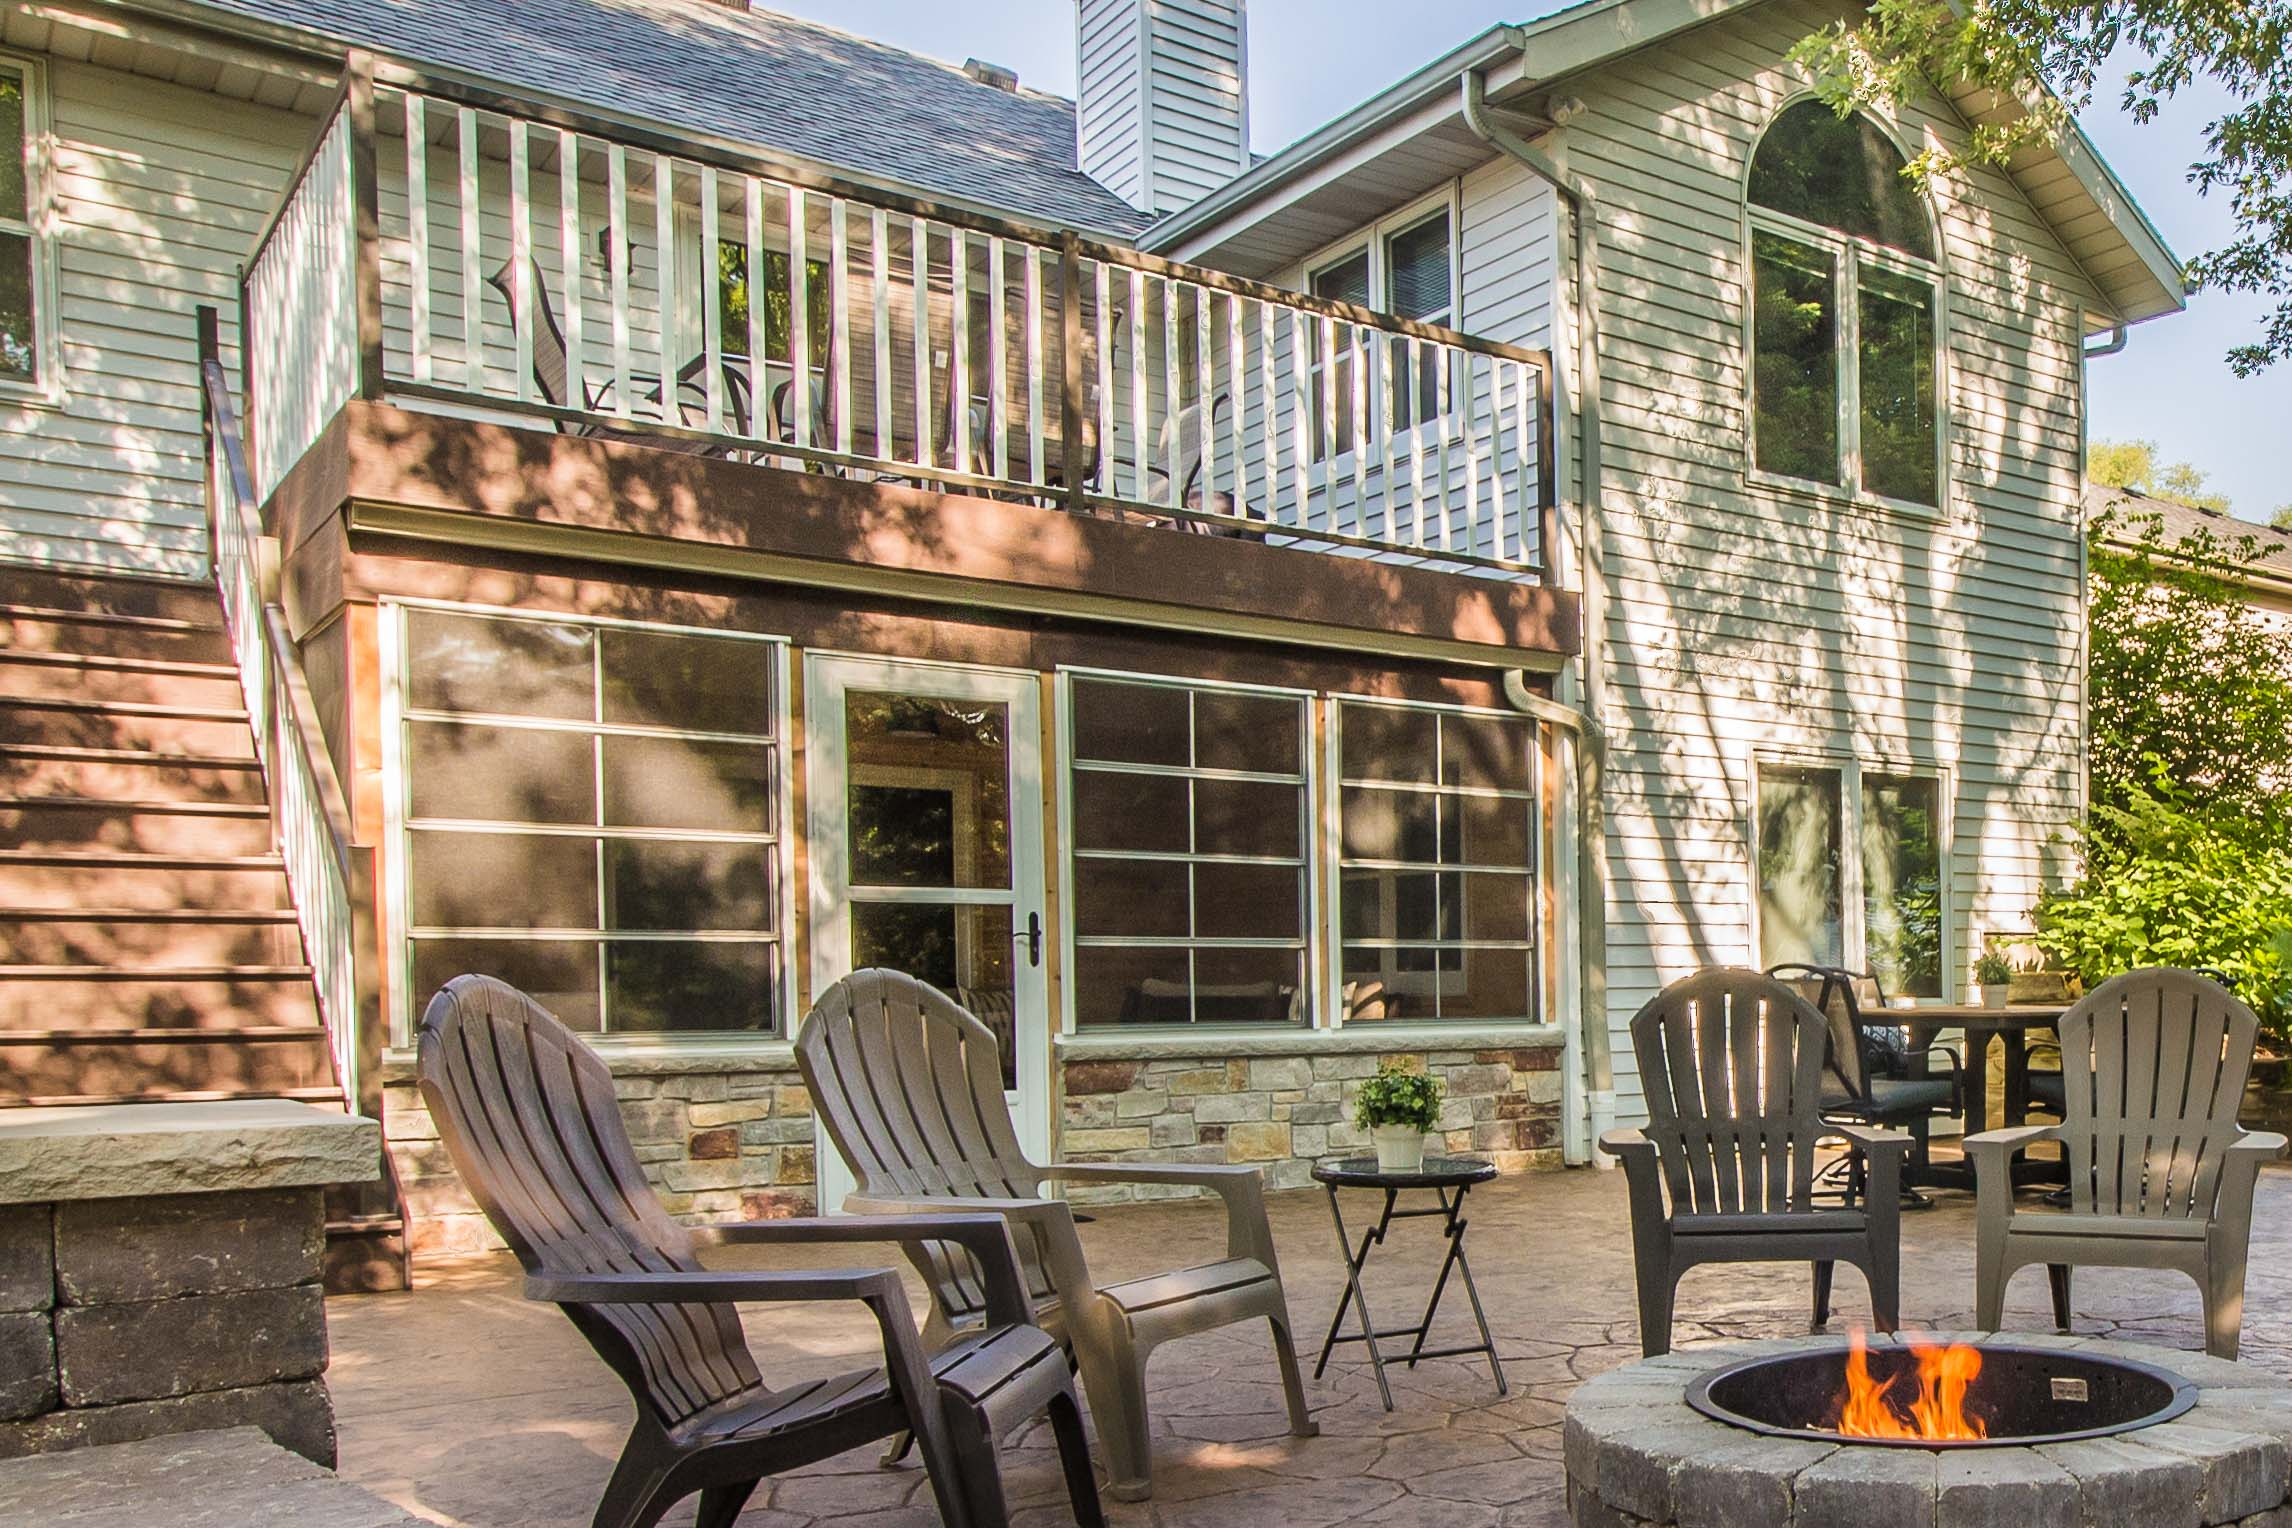 - A fire pit and patio can be the perfect way to unite the family on a summer eve.